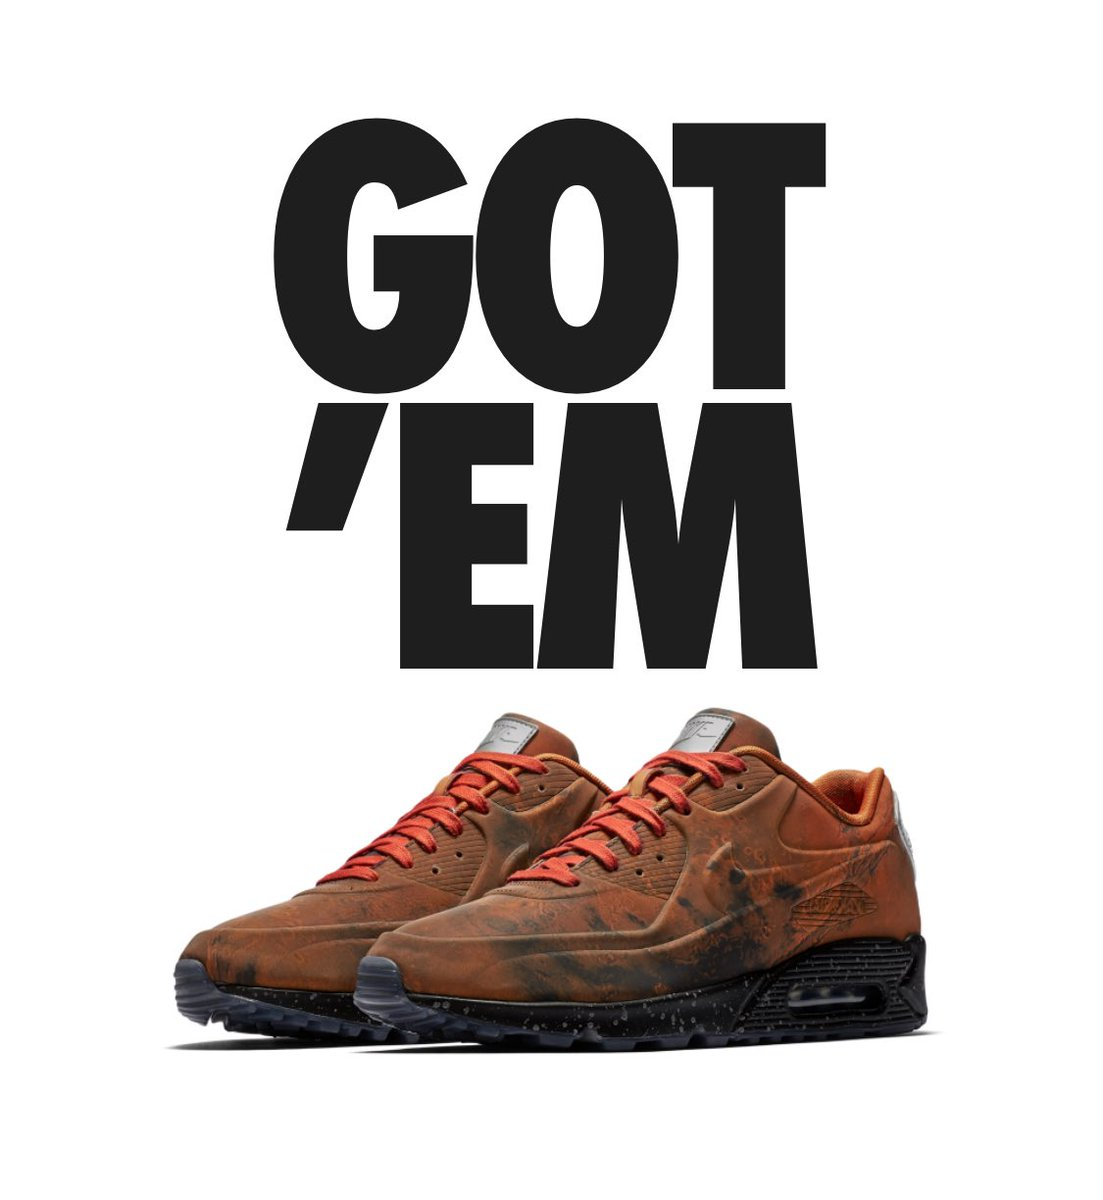 da37403de0b527 The Nike Air Max 90 QS is yours. Share your latest pick up with your